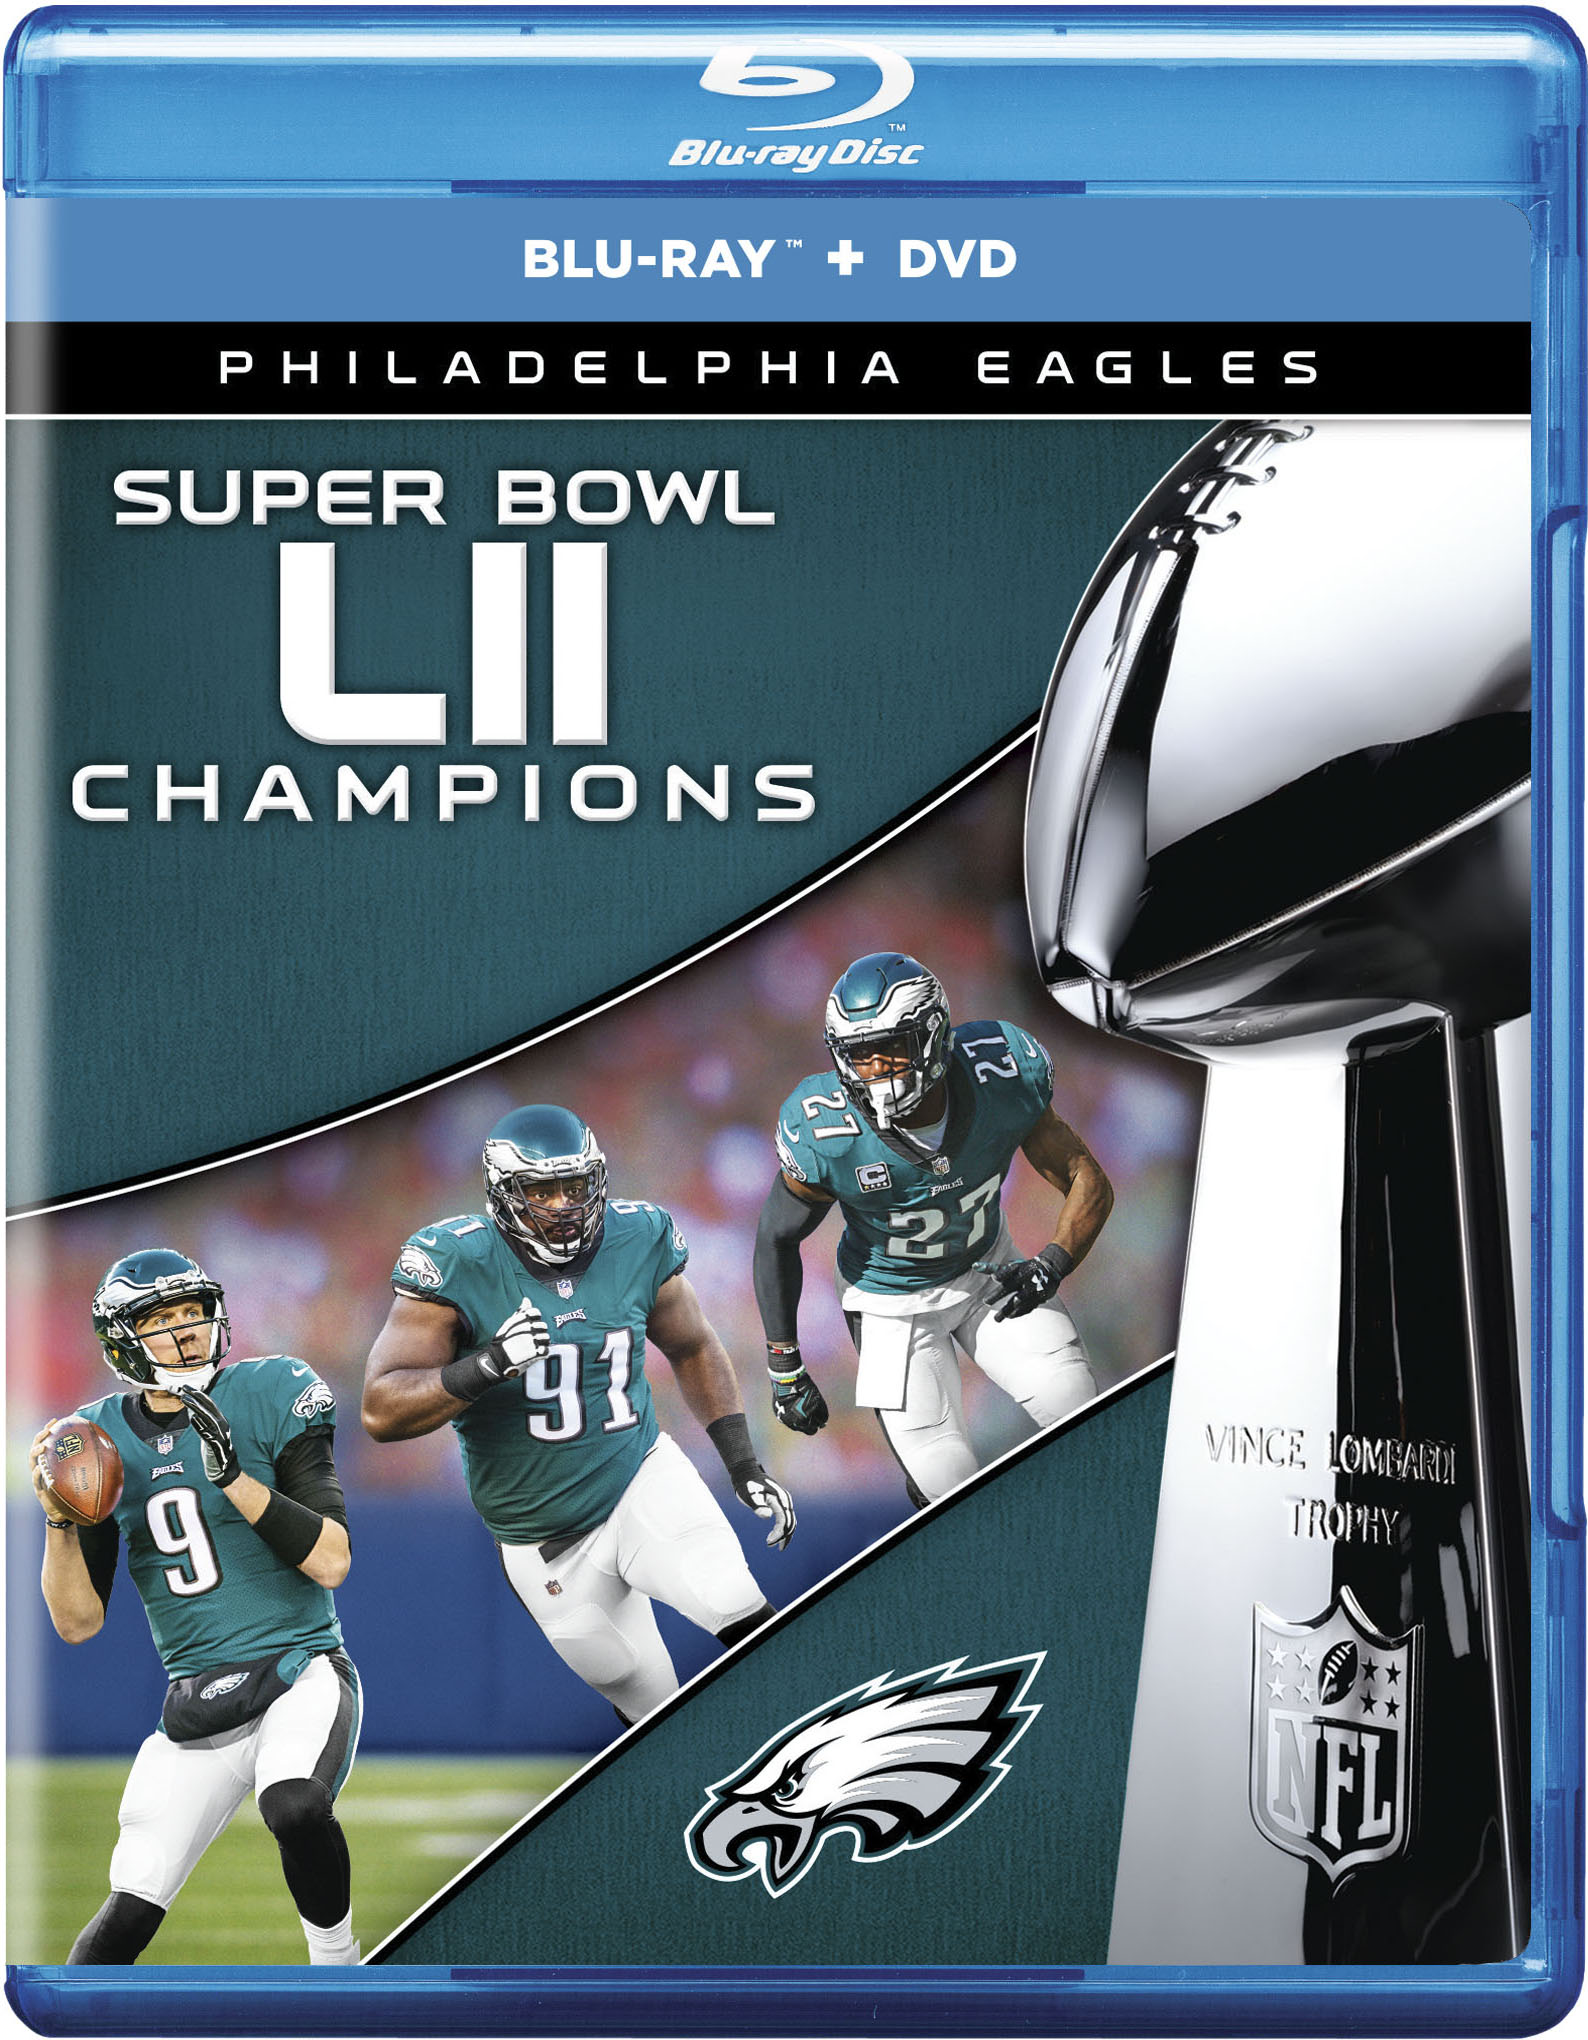 Philadelphia Eagles NFL Super Bowl 52 Champions (Blu-ray + DVD) by